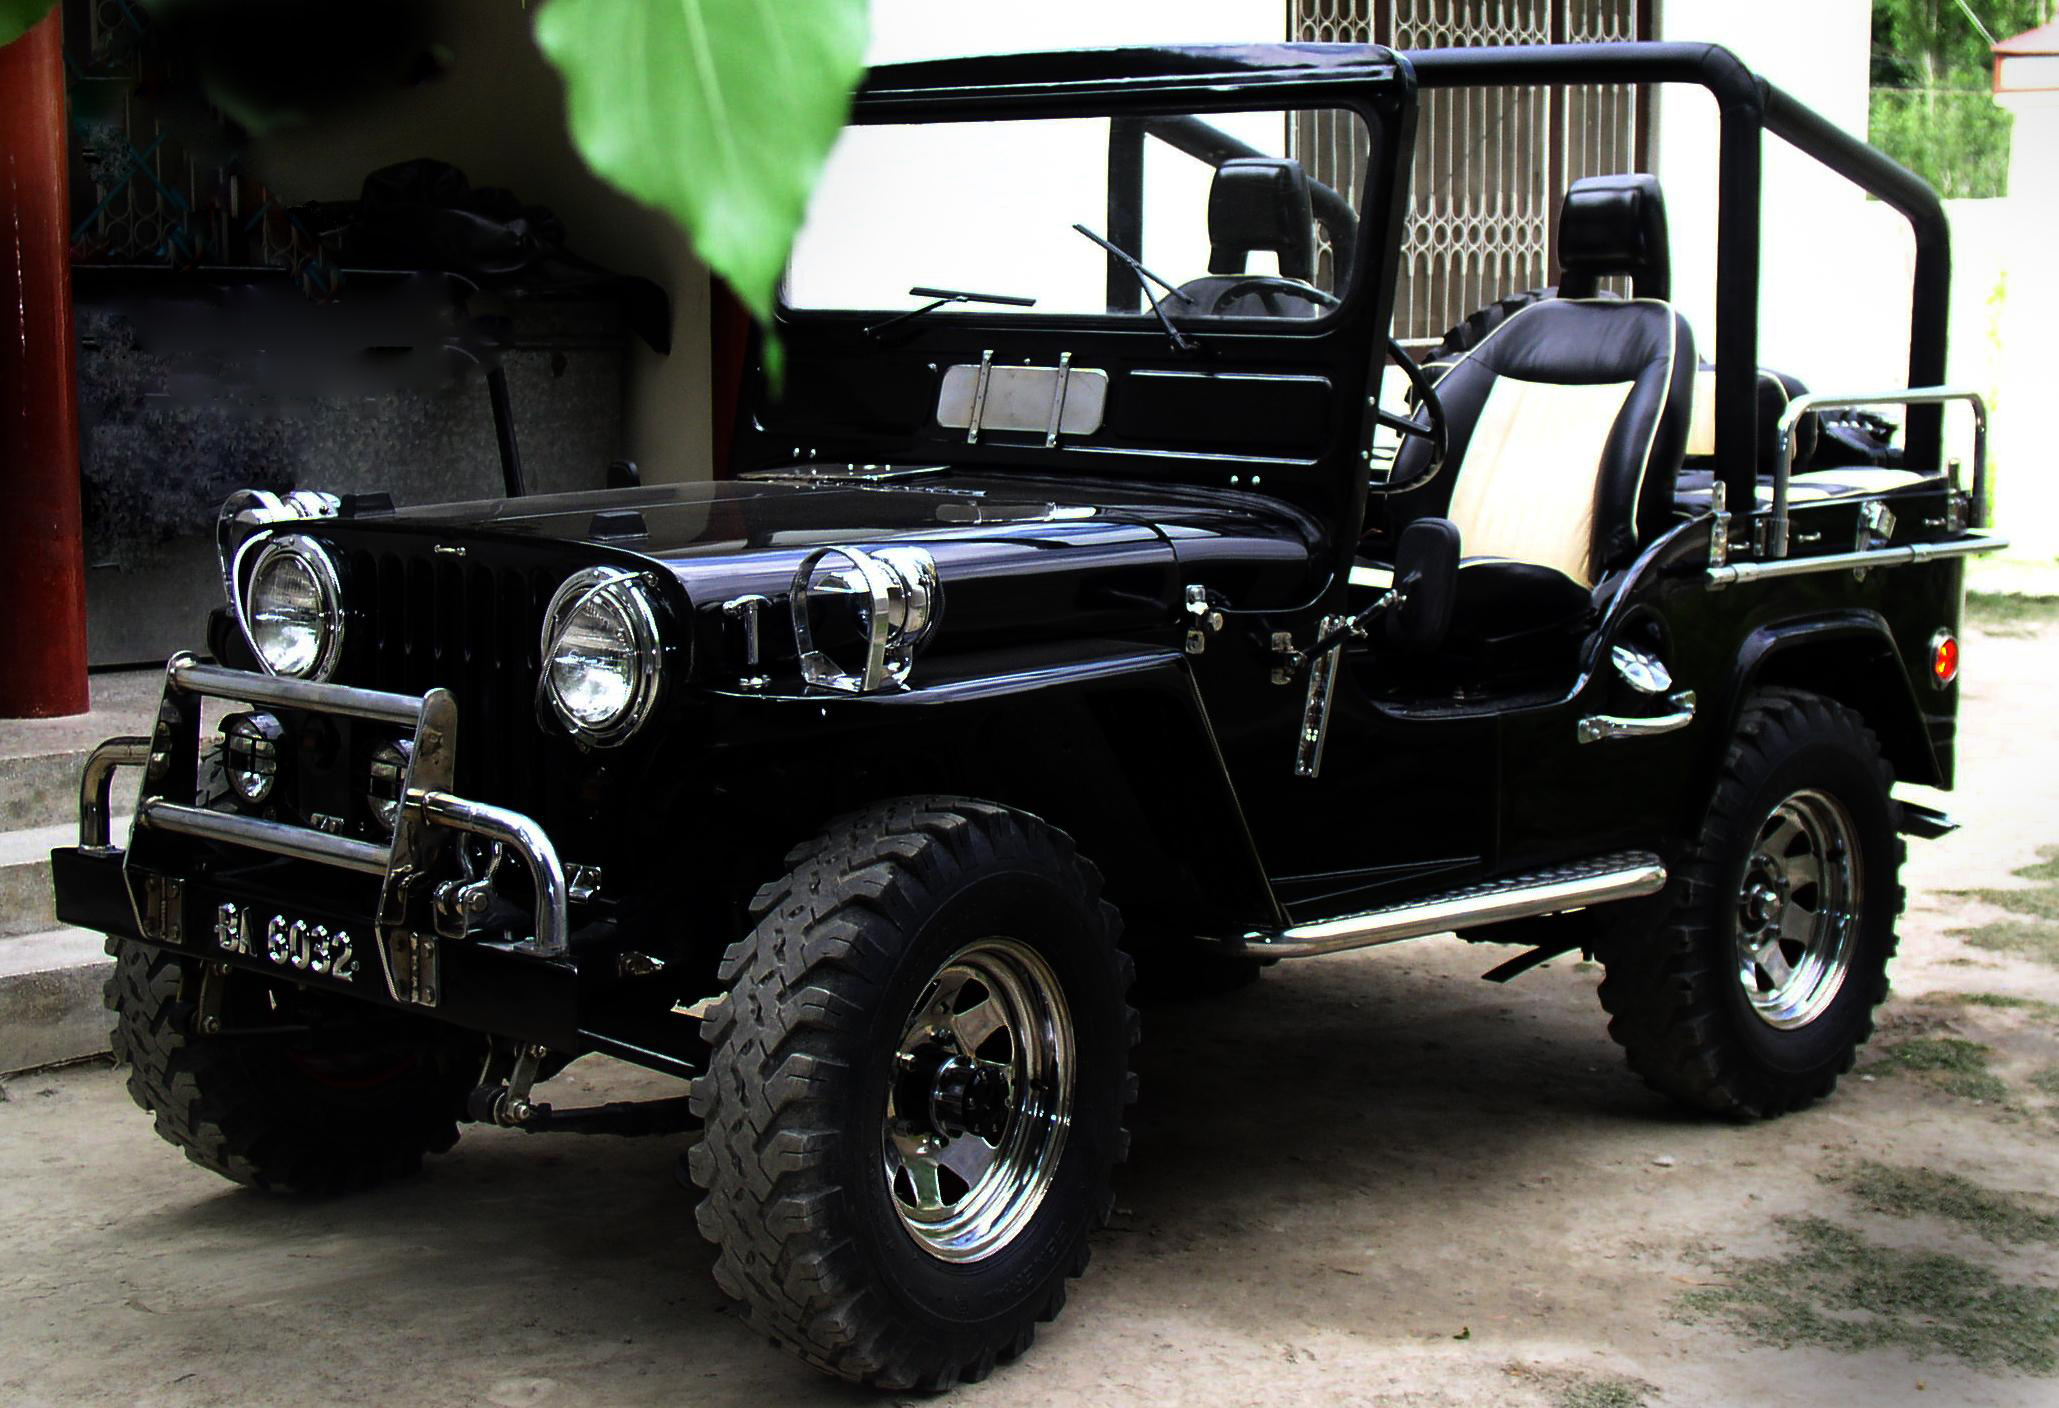 jeep other 1952 of fouadhafeez member ride 15533 pakwheels. Black Bedroom Furniture Sets. Home Design Ideas